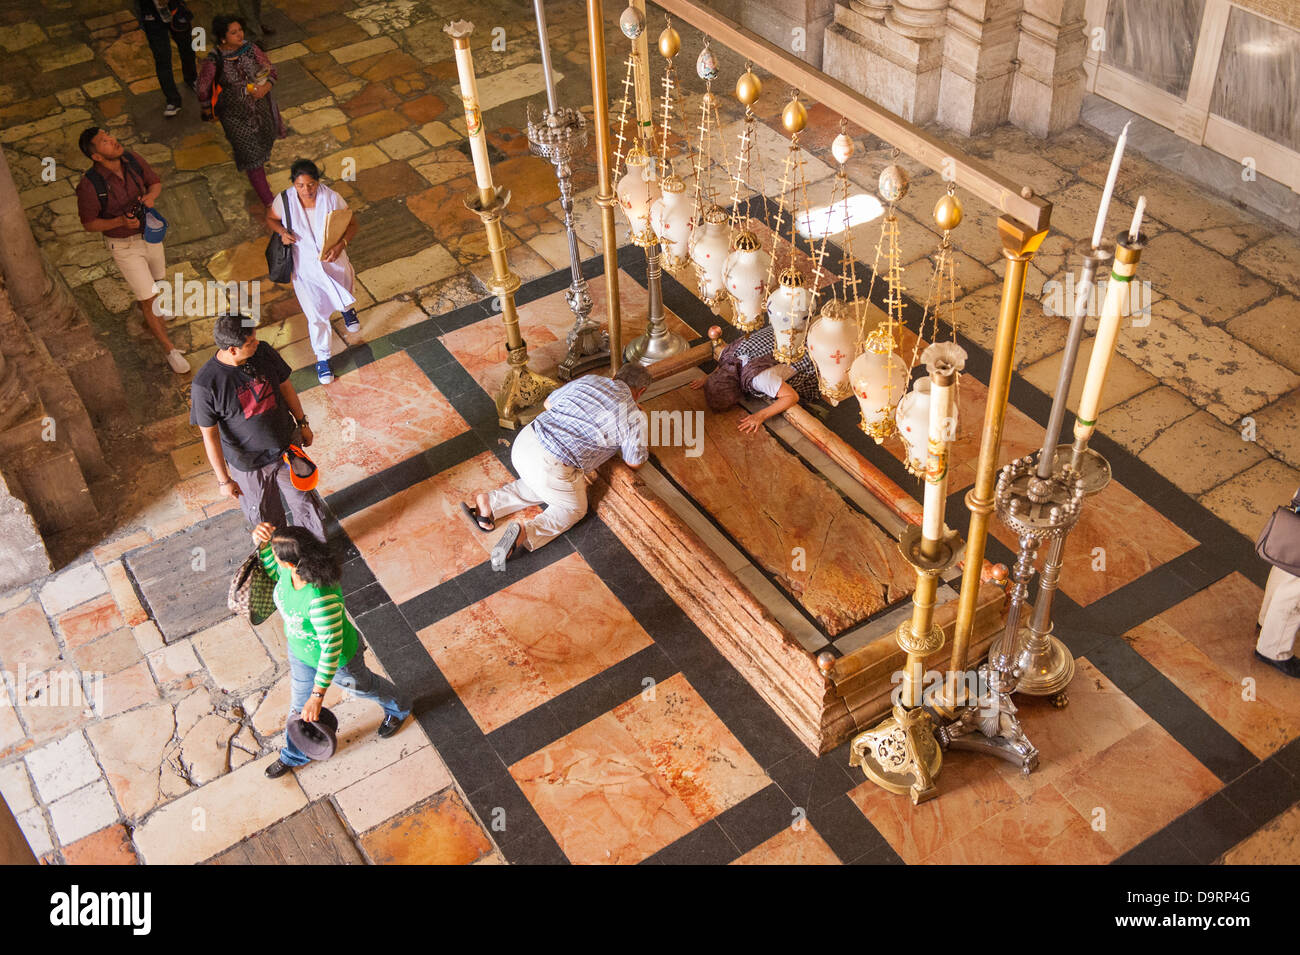 Israel Jerusalem Old City Church of the Holy Sepulcher Sepulchre Stone of the Unction body of Christ anointed wrapped Stock Photo